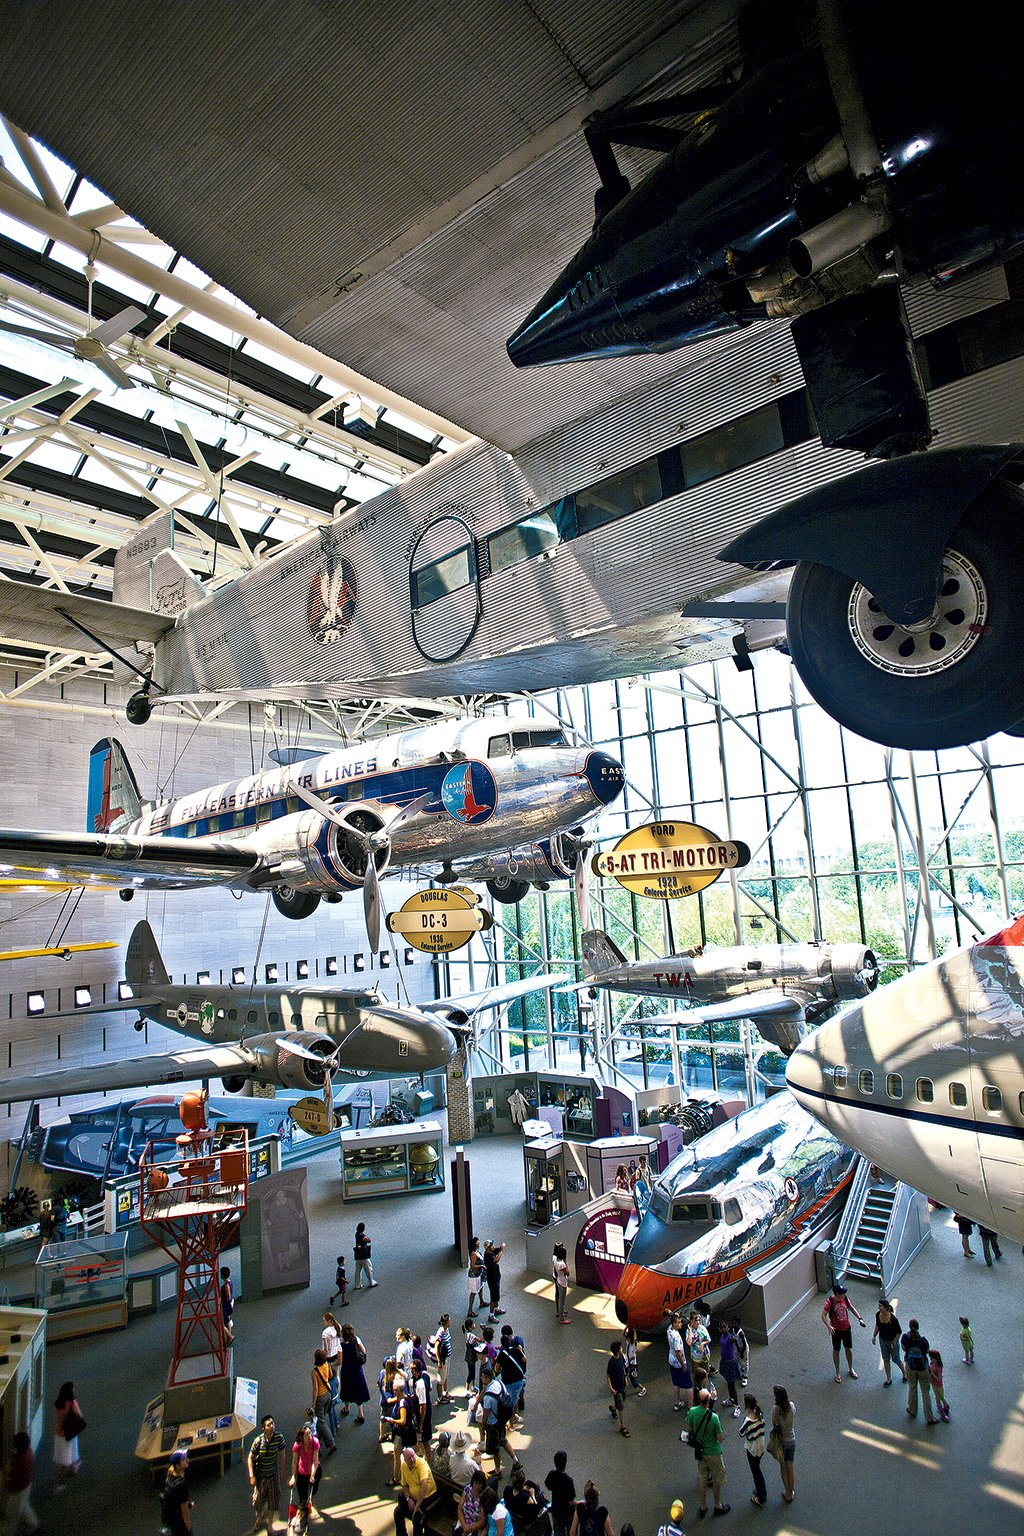 The National Air and Space Museum offers a comprehensive look at the history and evolution of flight.